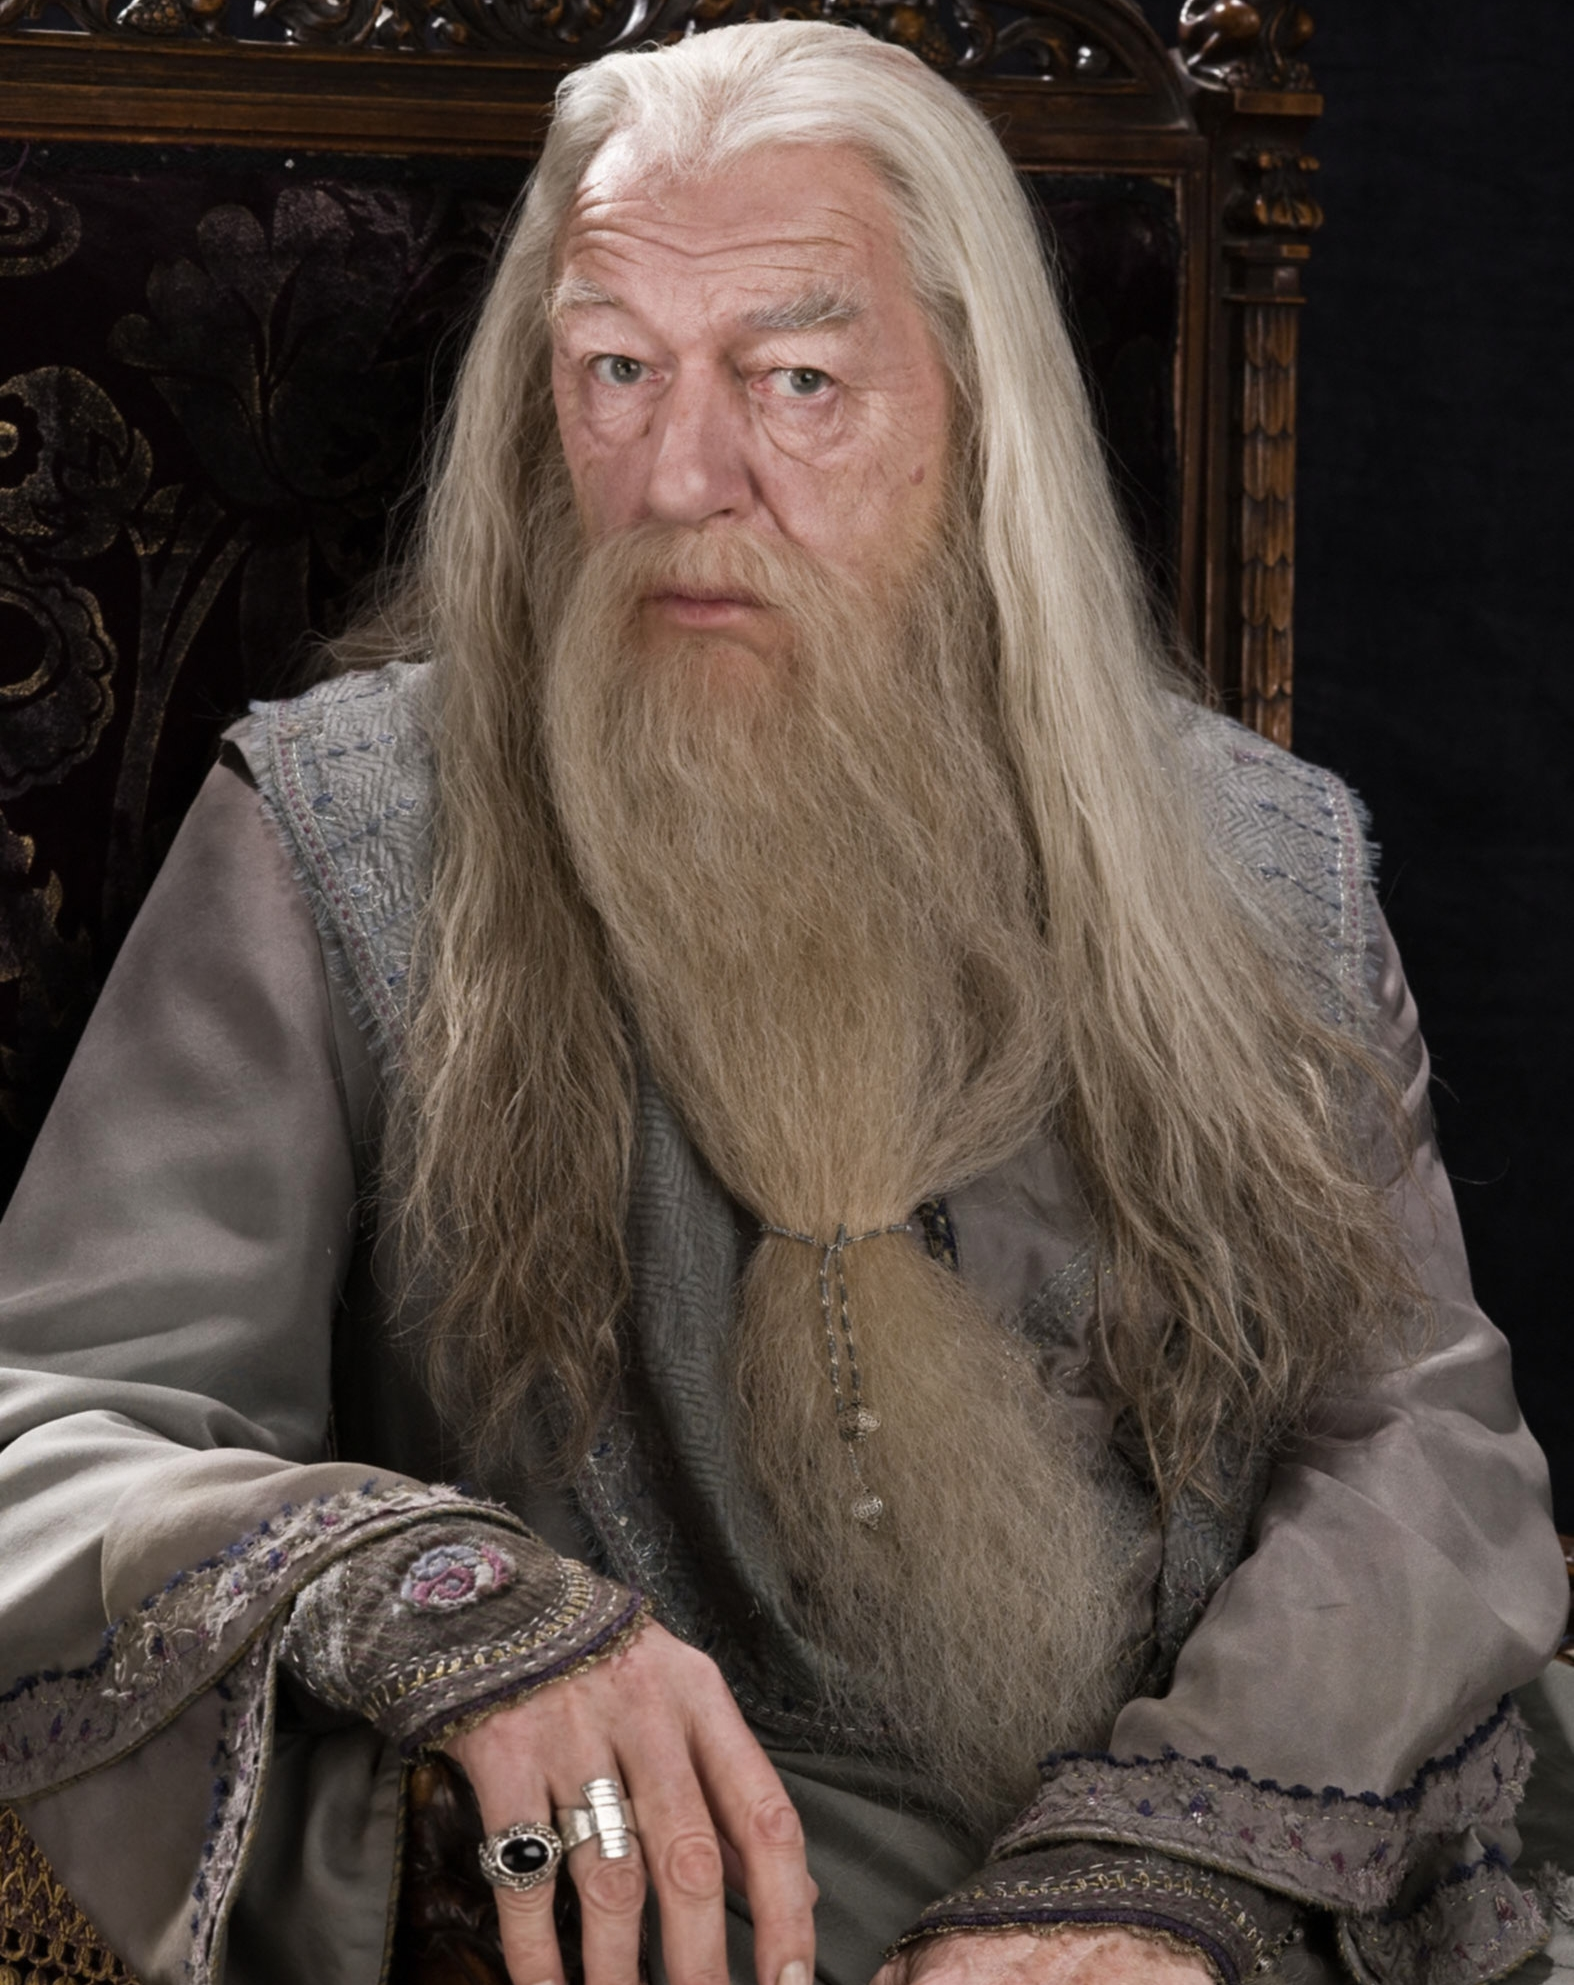 Things you may not have noticed about… Albus Dumbledore